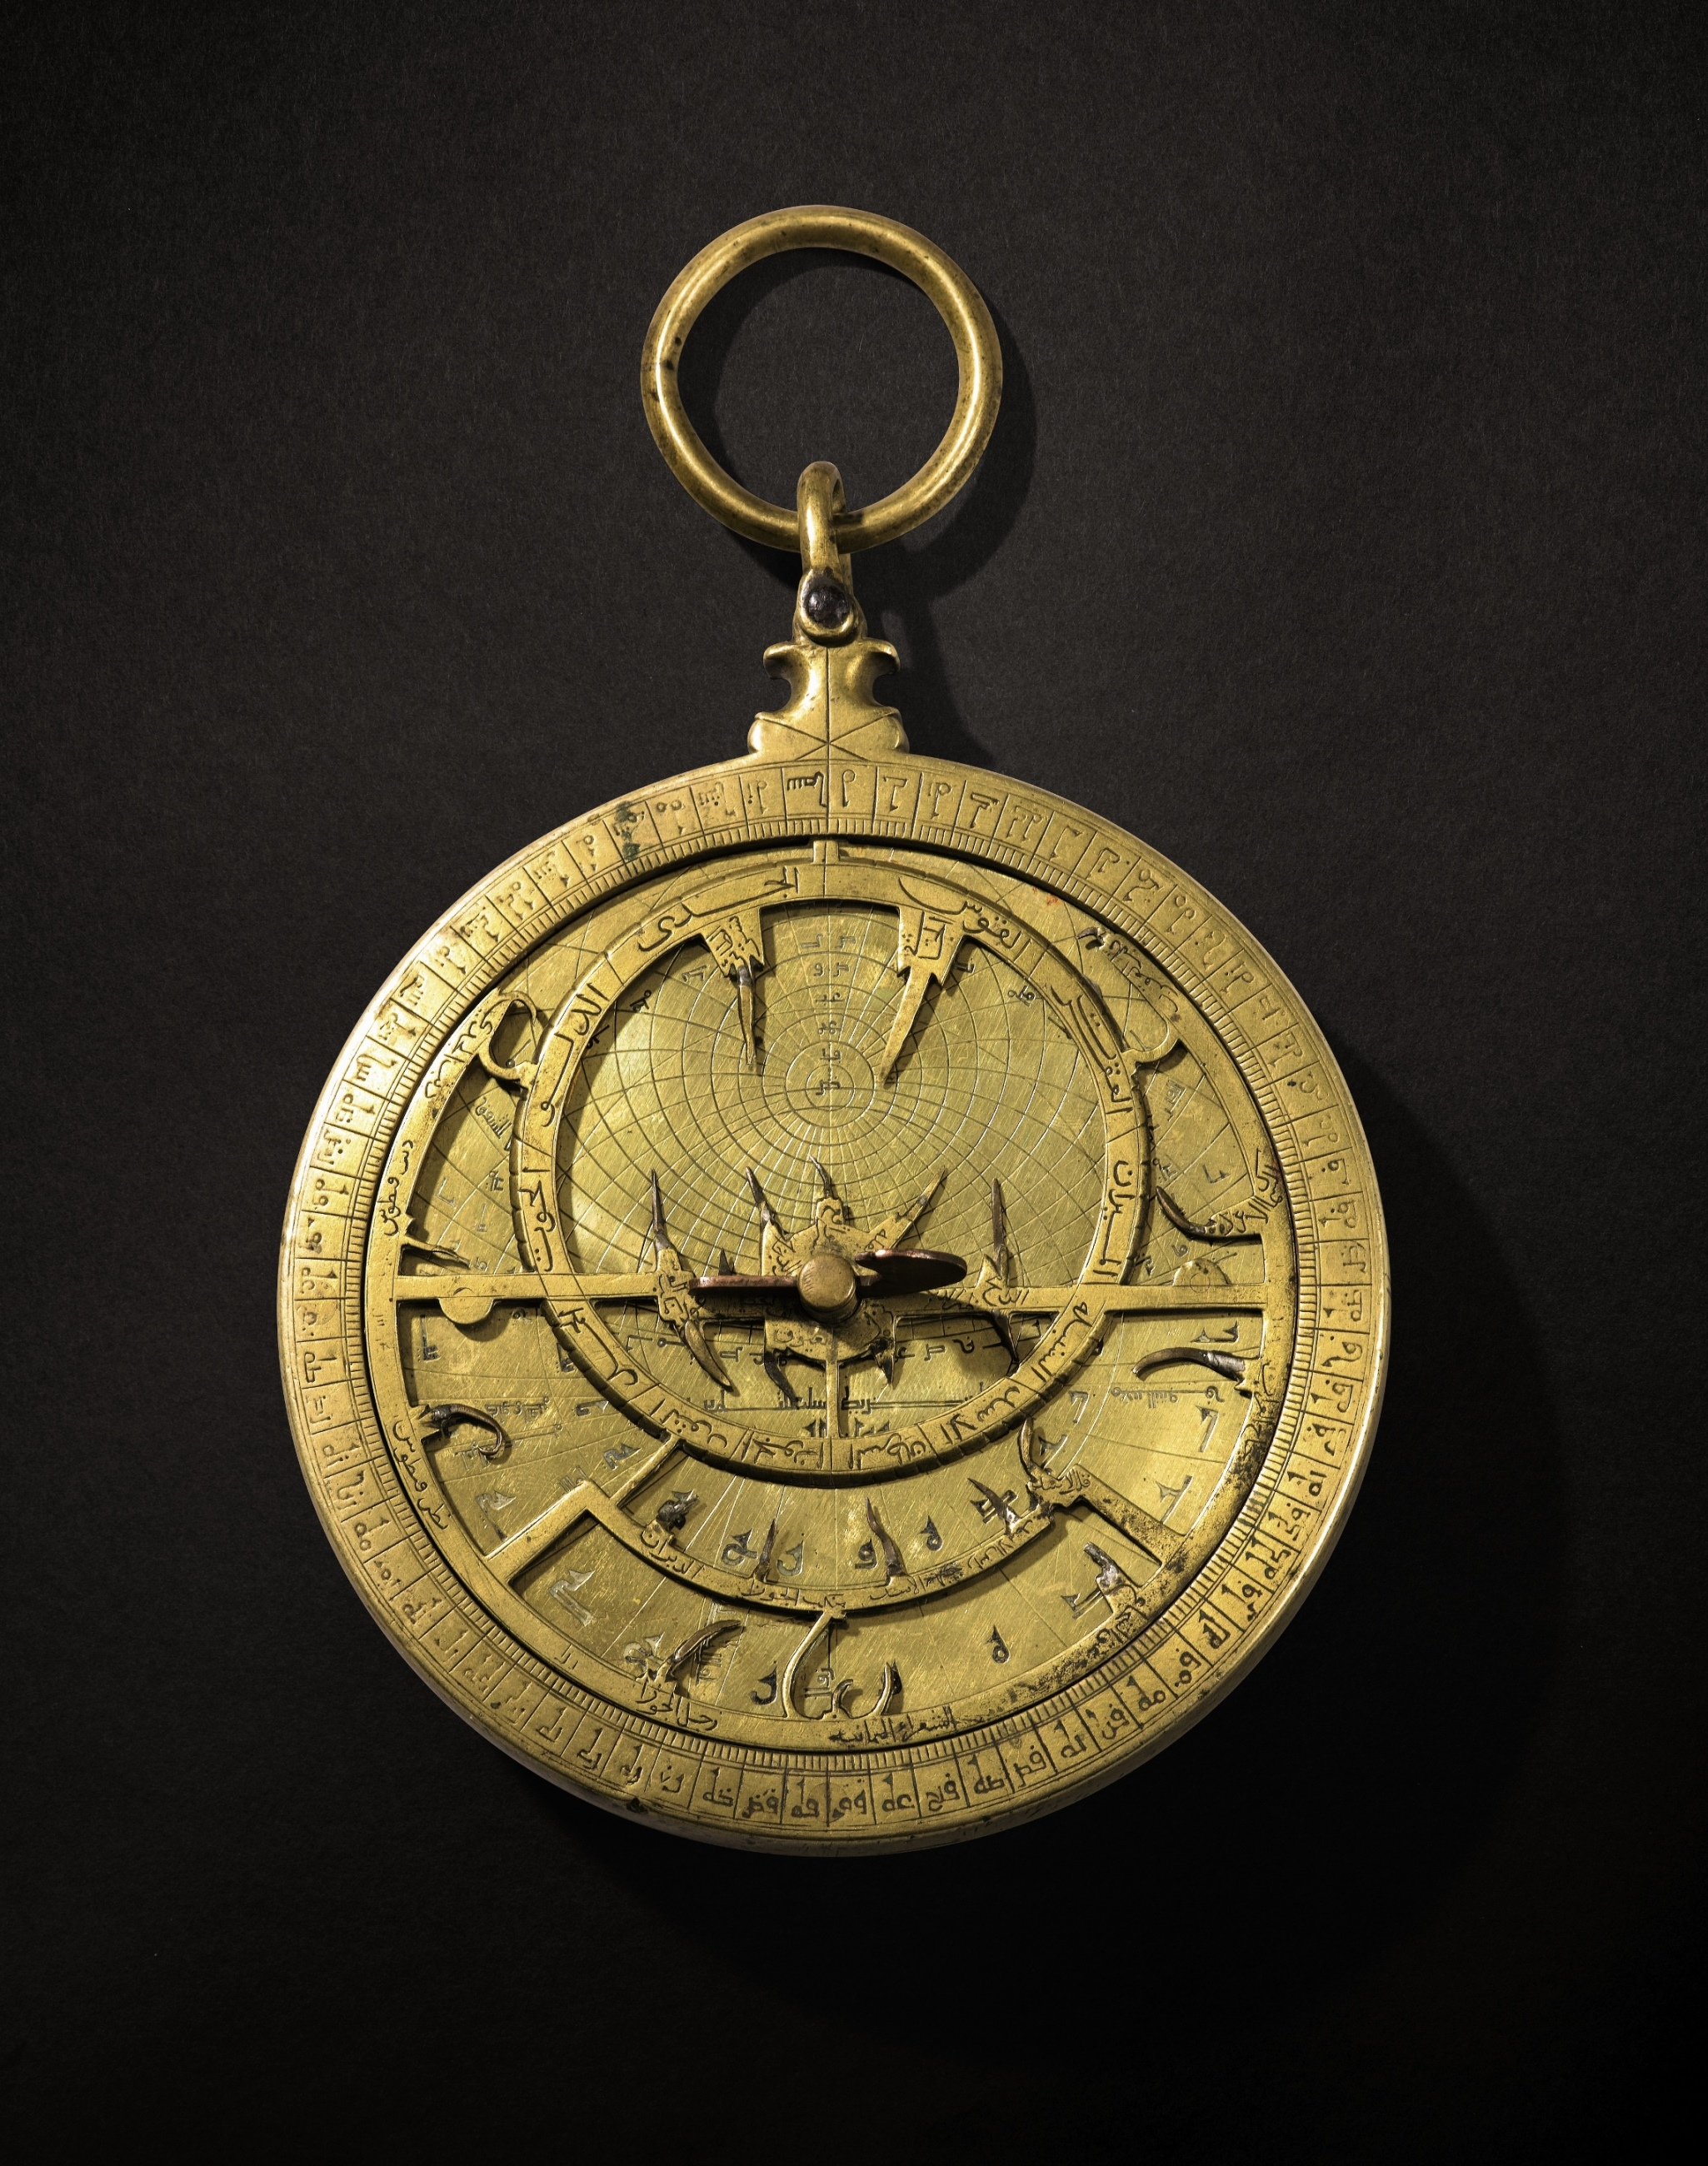 A rare Umayyad-era brass astrolabe, signed by Muhammad ibn al-Saffar and dated in Western Abjad 411 AH (1020 AD). It is the earliest known dated astrolabe from Muslim Spain. It comes from a French collection.